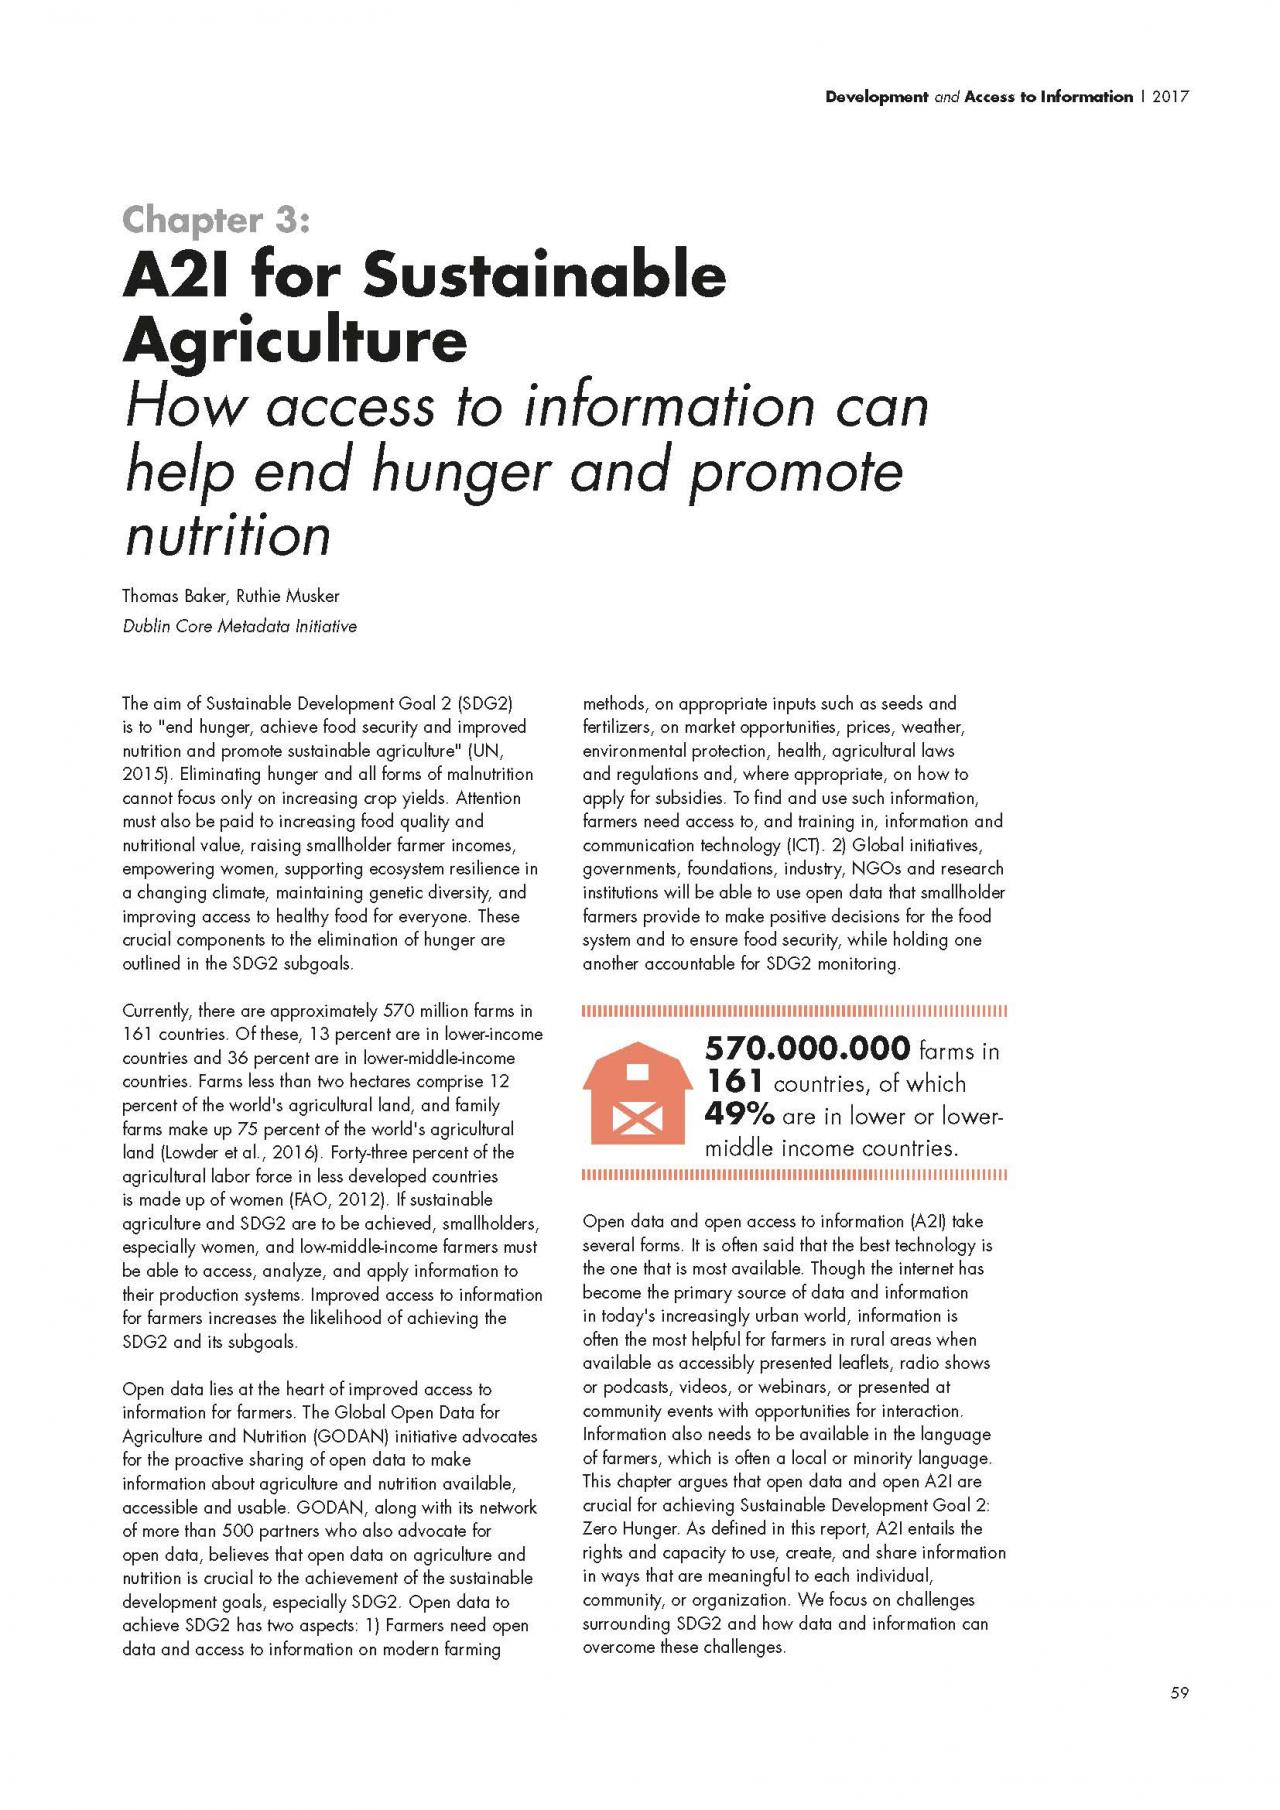 Chapter 3: A2I for Sustainable Agriculture: How access to information can help end hunger and promote nutrition